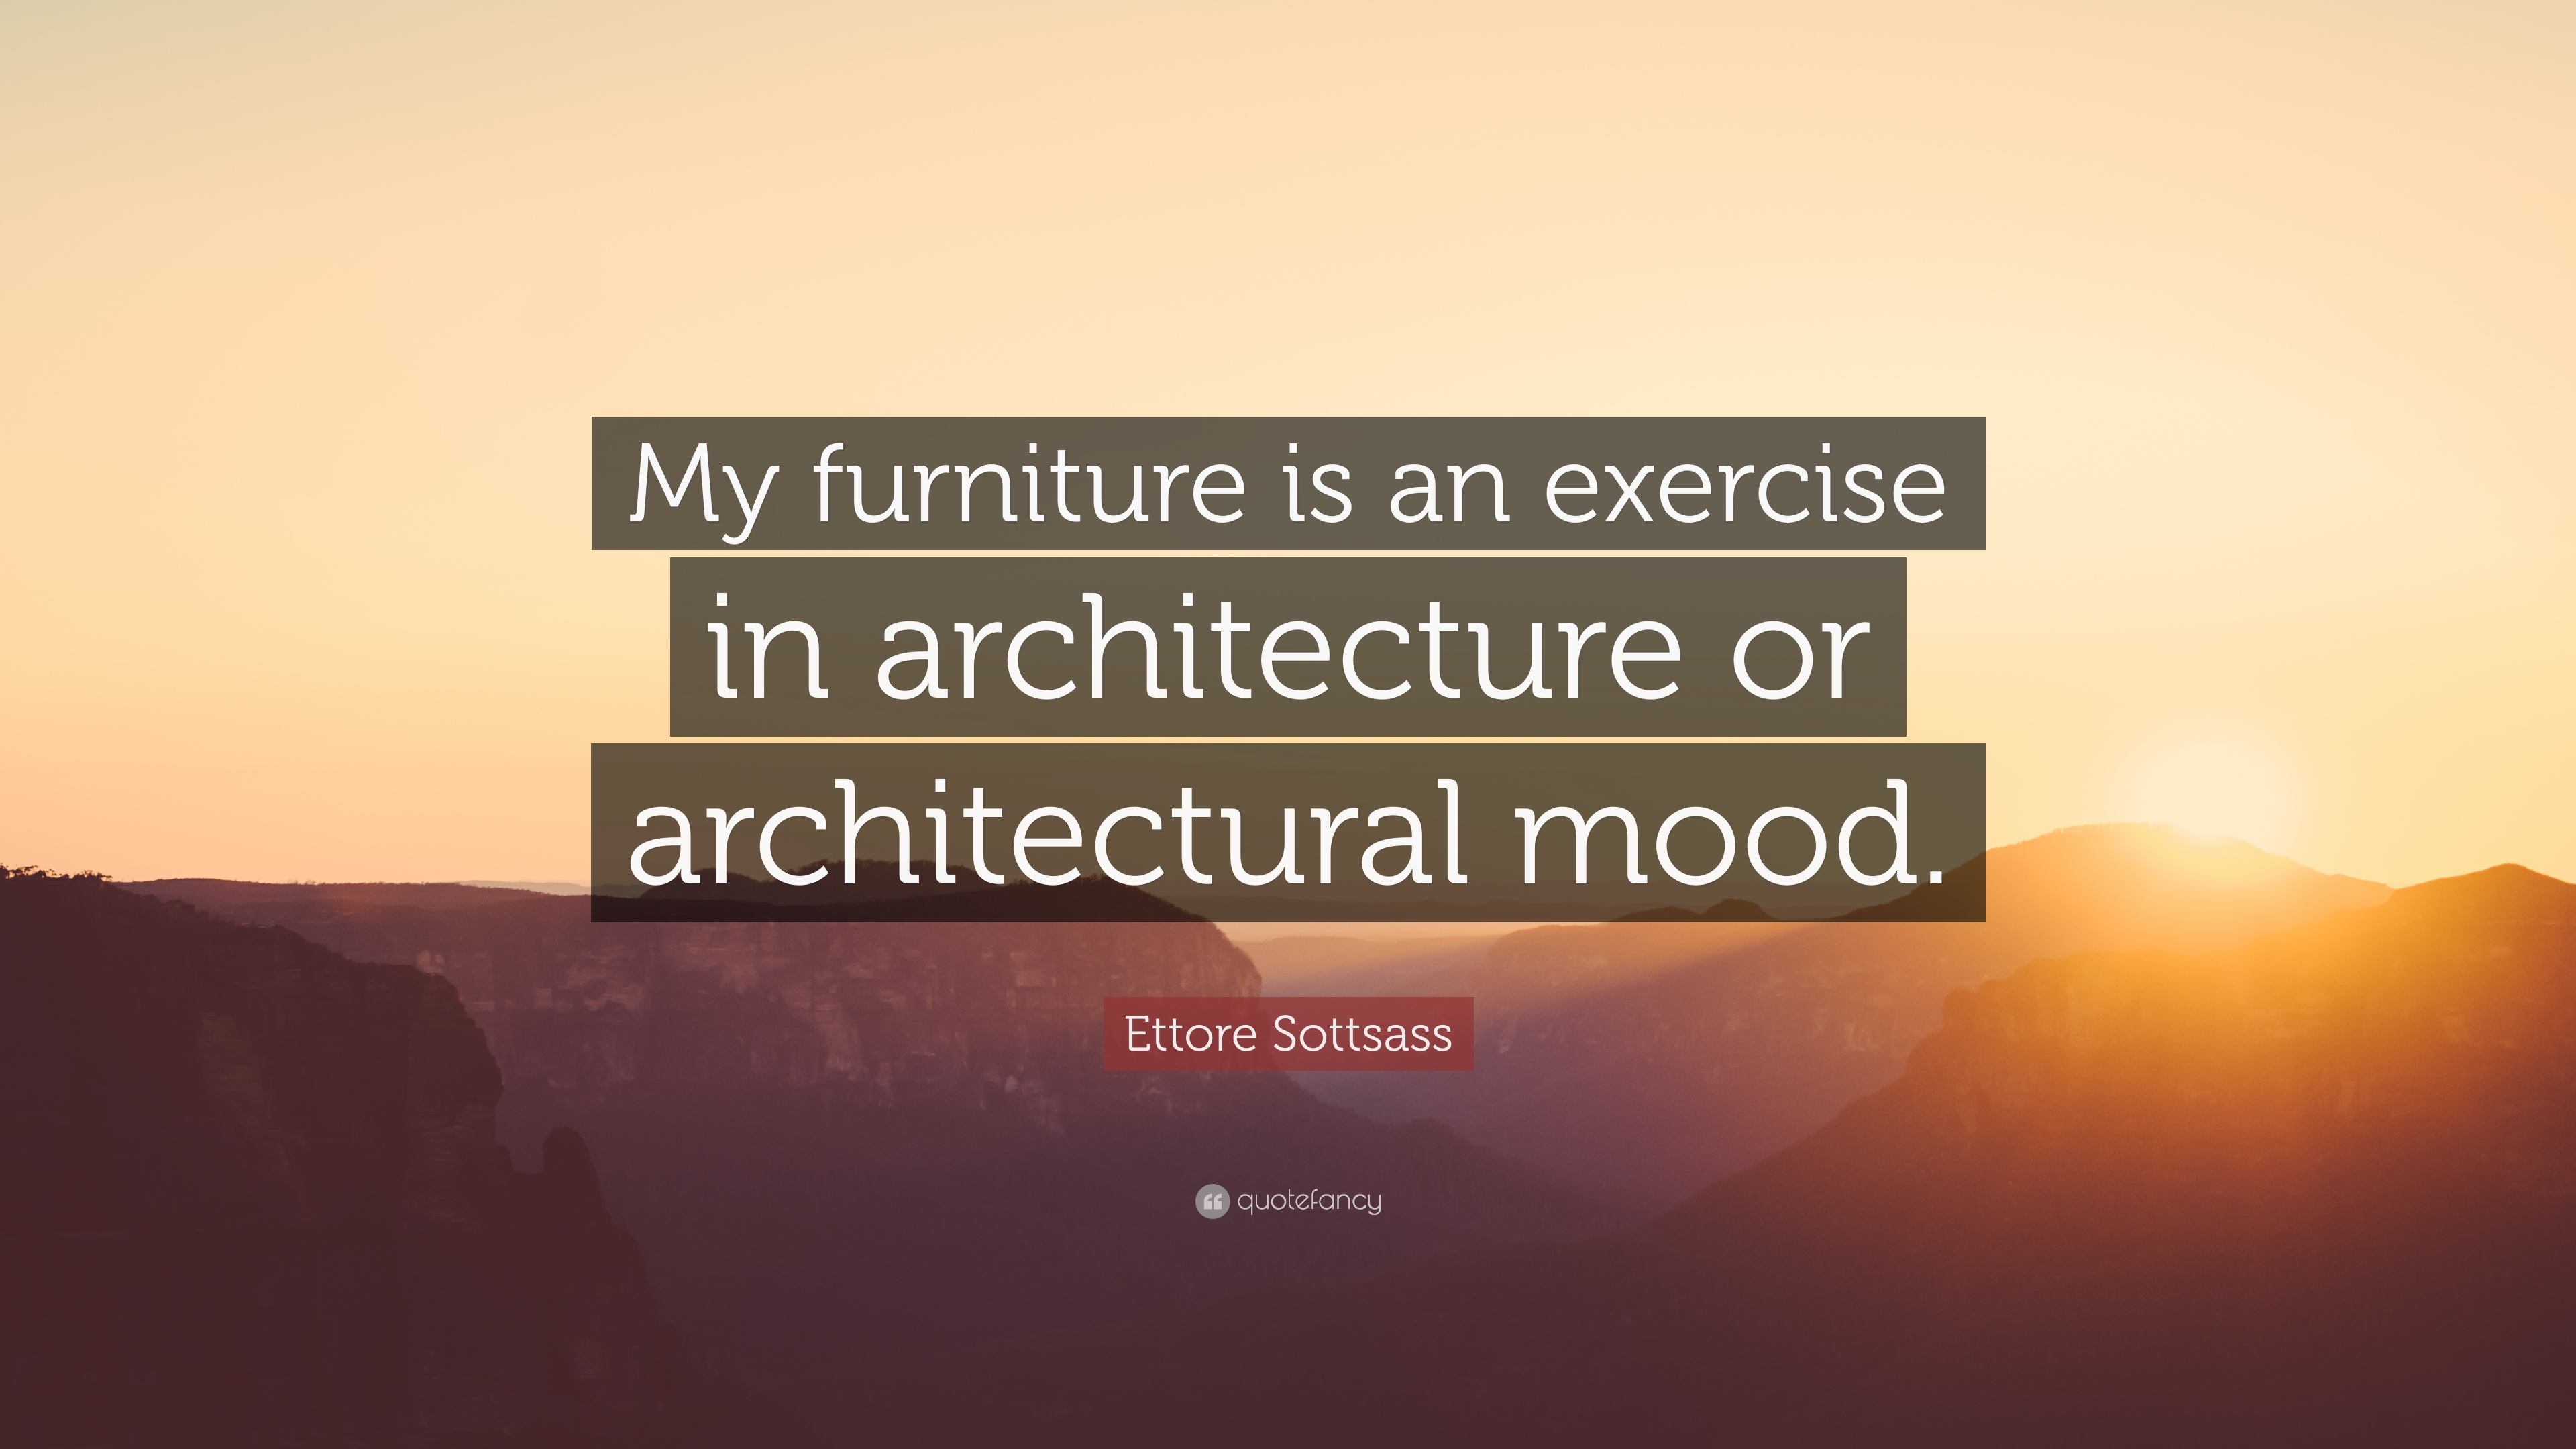 ettore sottsass quotes quotefancy